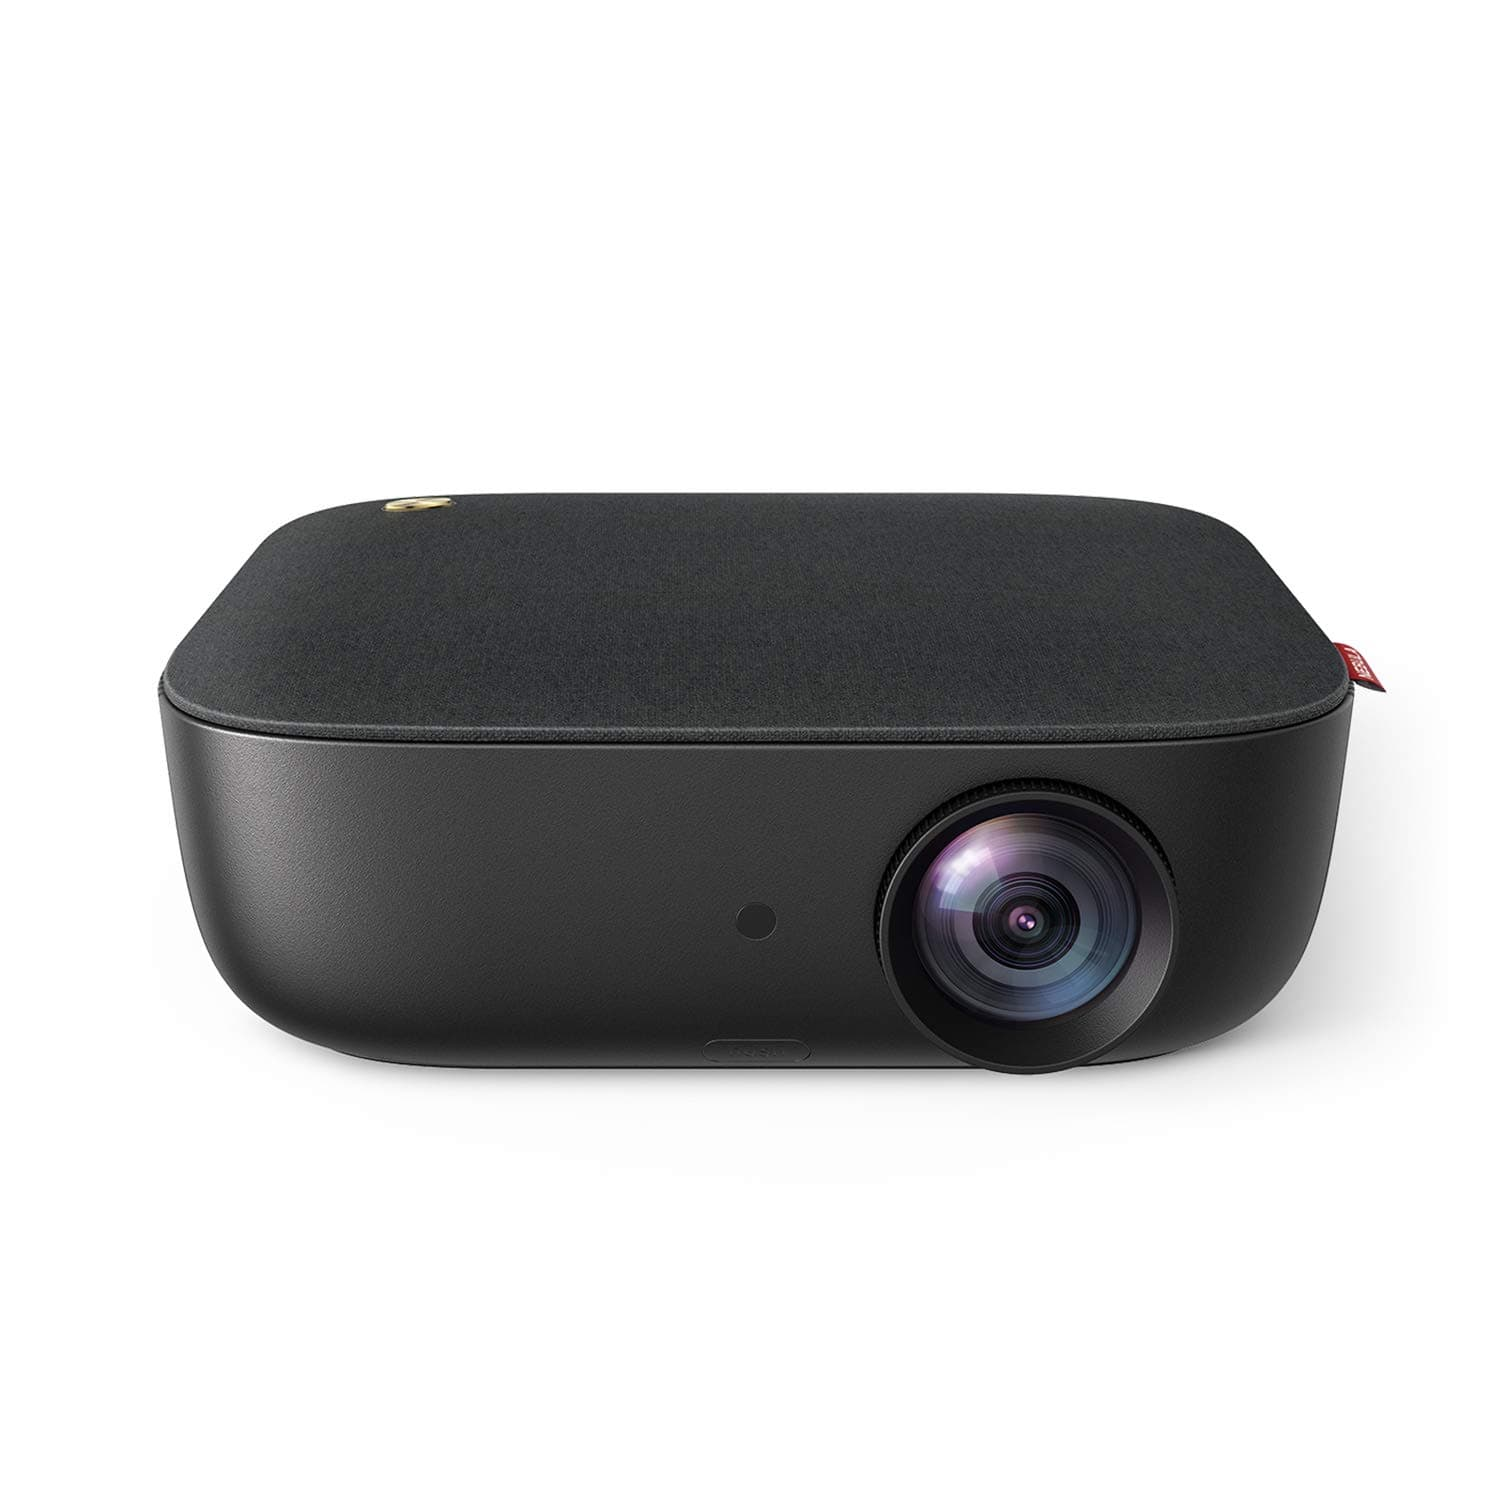 Nebula by Anker Prizm II 200 ANSI Lumens Full HD 1080p LED Multimedia Projector, $157 AC Amazon